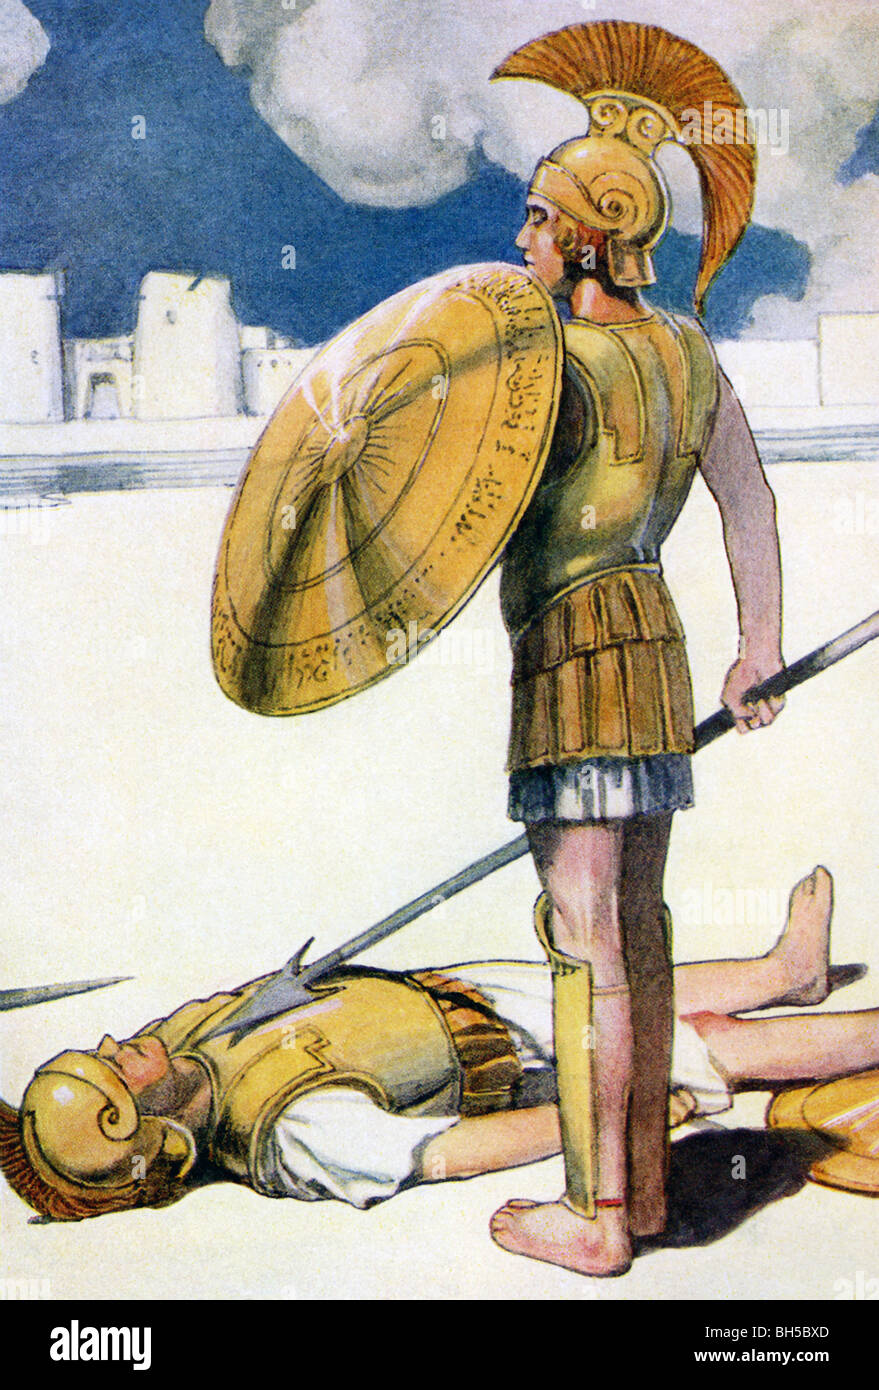 the wrath of achilles in the iliad an epic poem by homer Iliad: homer's famous epic about the wrath of achilles, the main poem of the epic cycle, and the beginning of greek literature homer the iliad is the sixth epic of the epic cycle  it is.